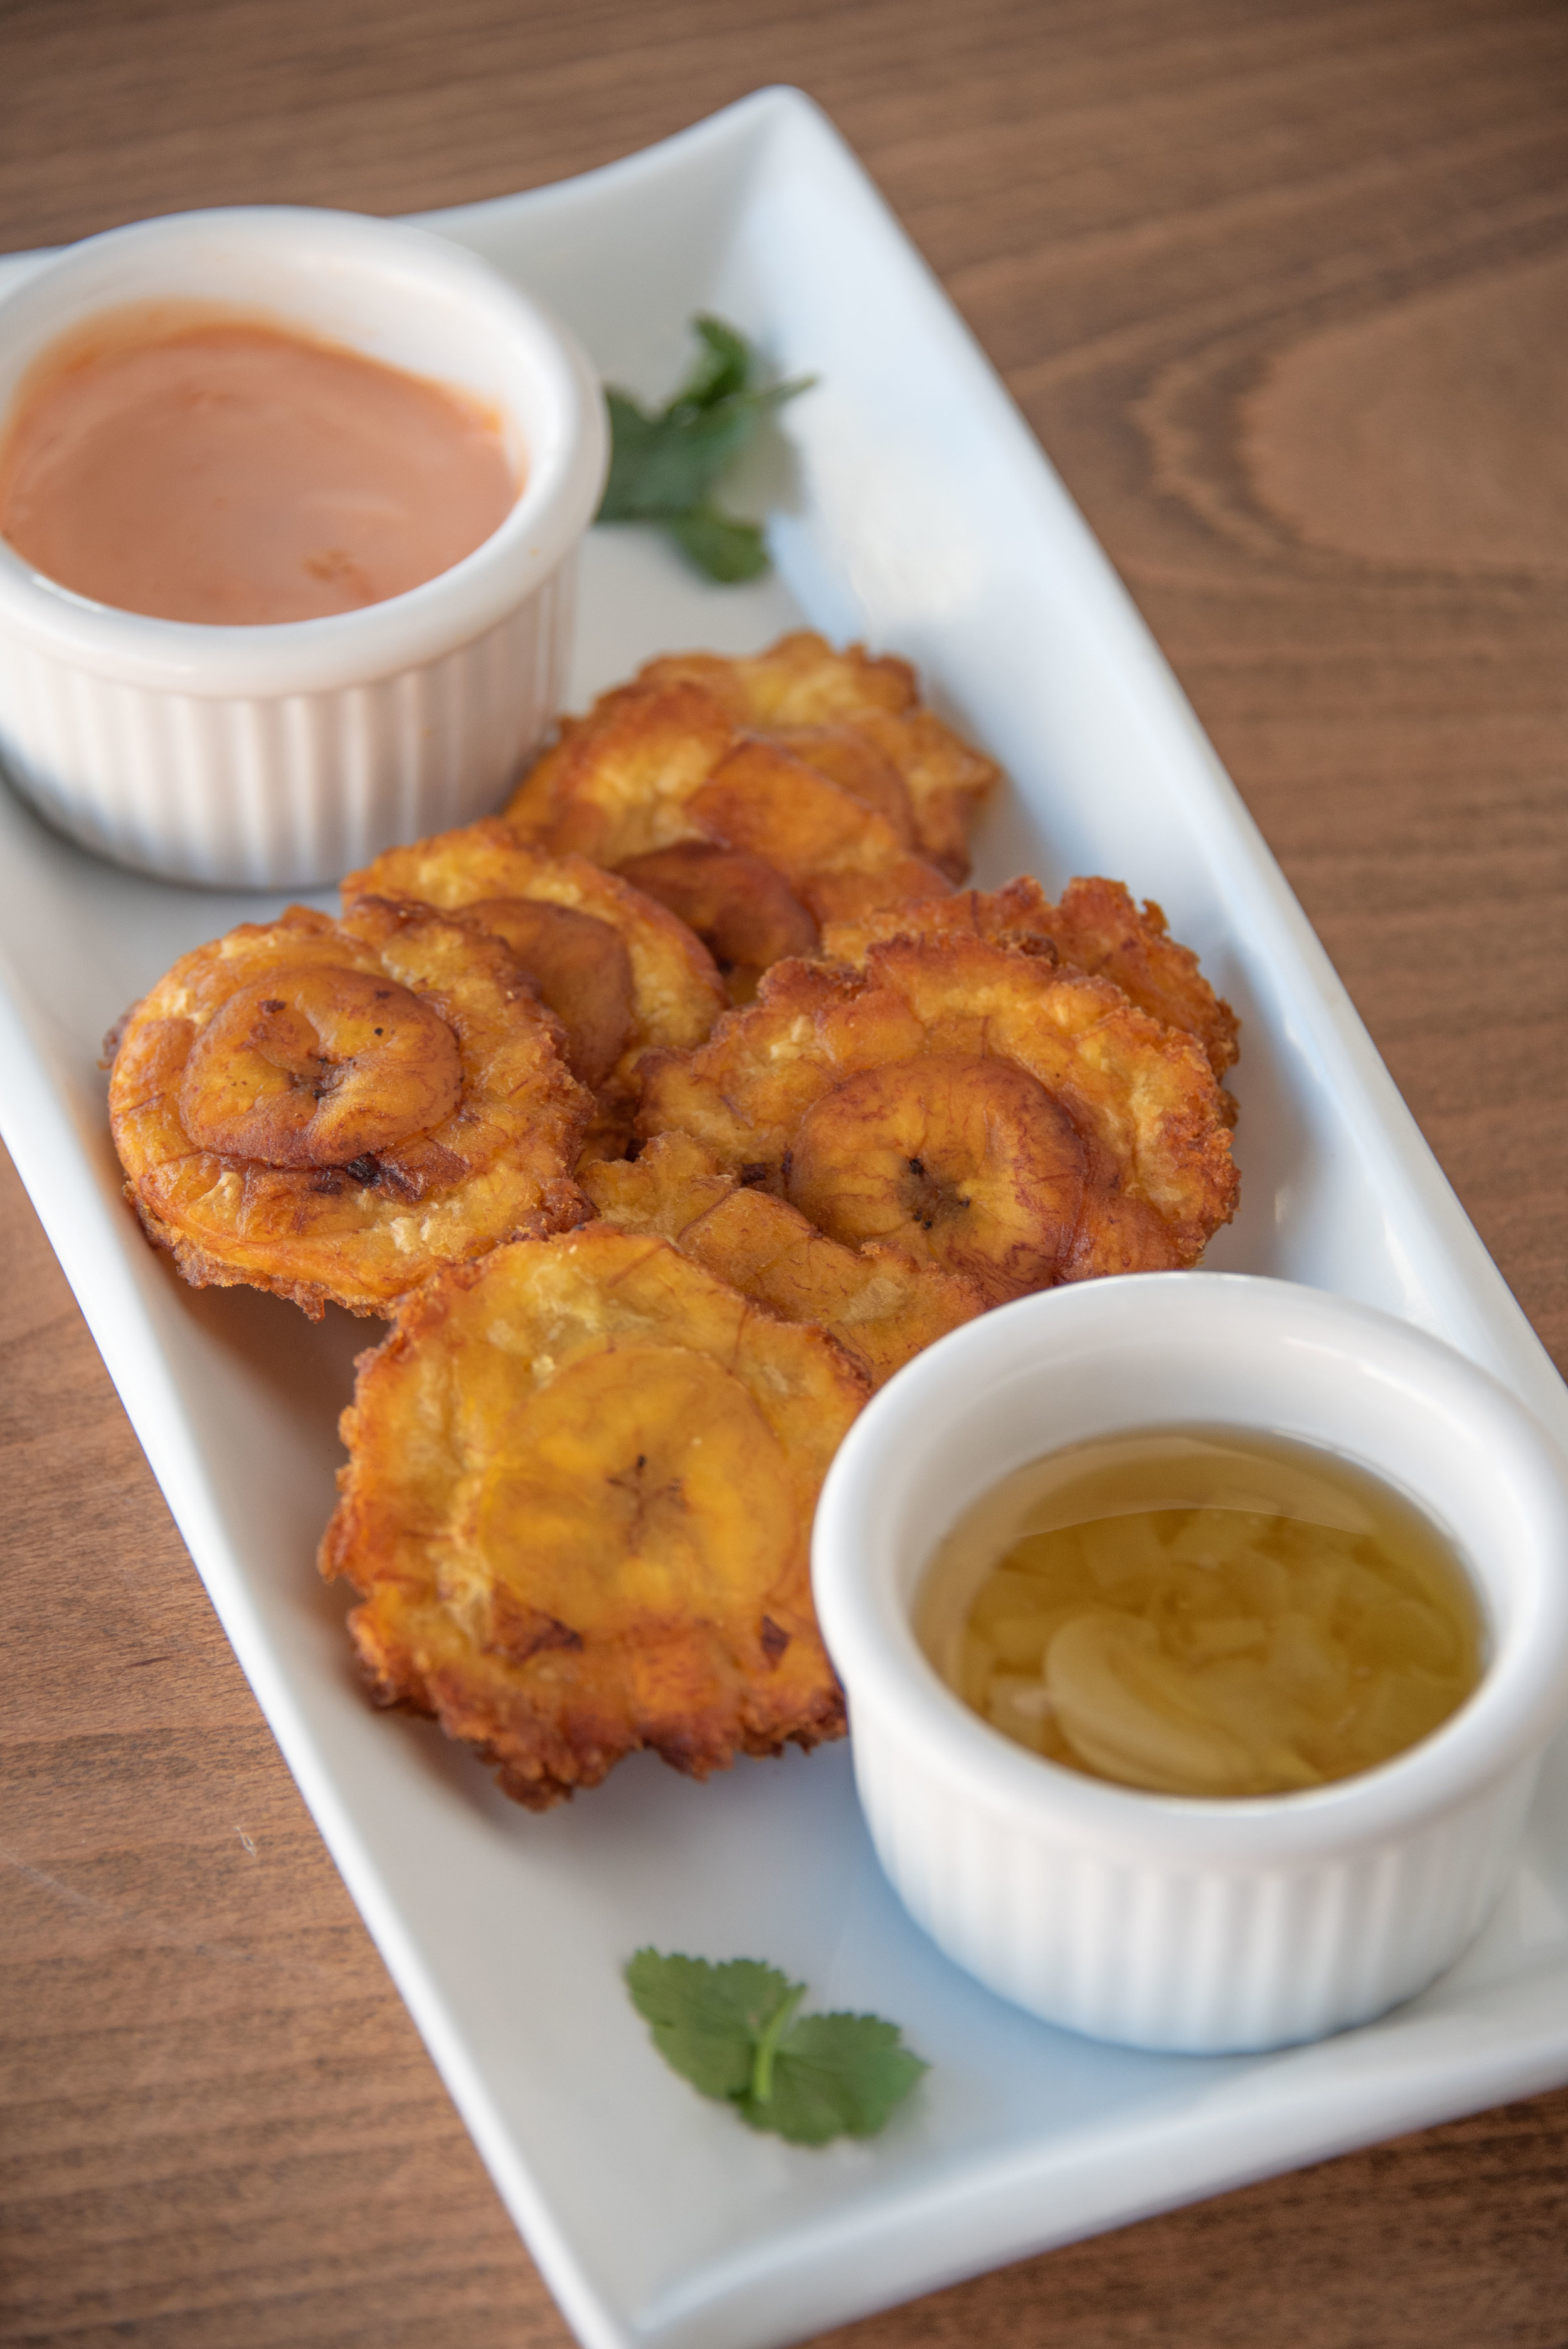 Tostones - Twice Fried Smashed Green Plantains  Served with two sauces: Garlic Mojo and Spicy Remoulade